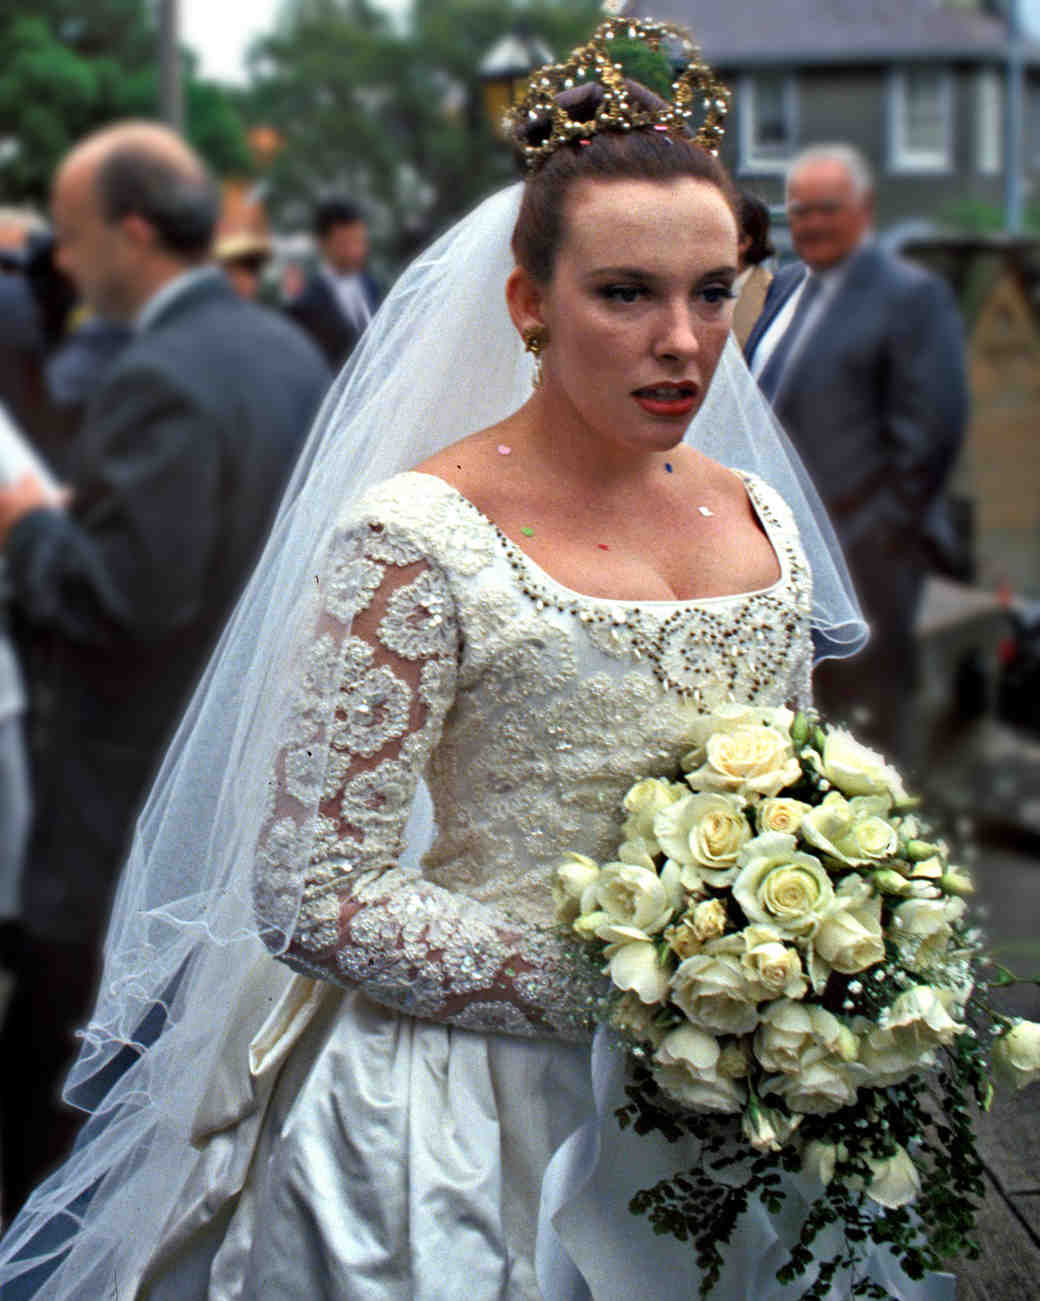 Muriel's wedding toni collette wedding dress